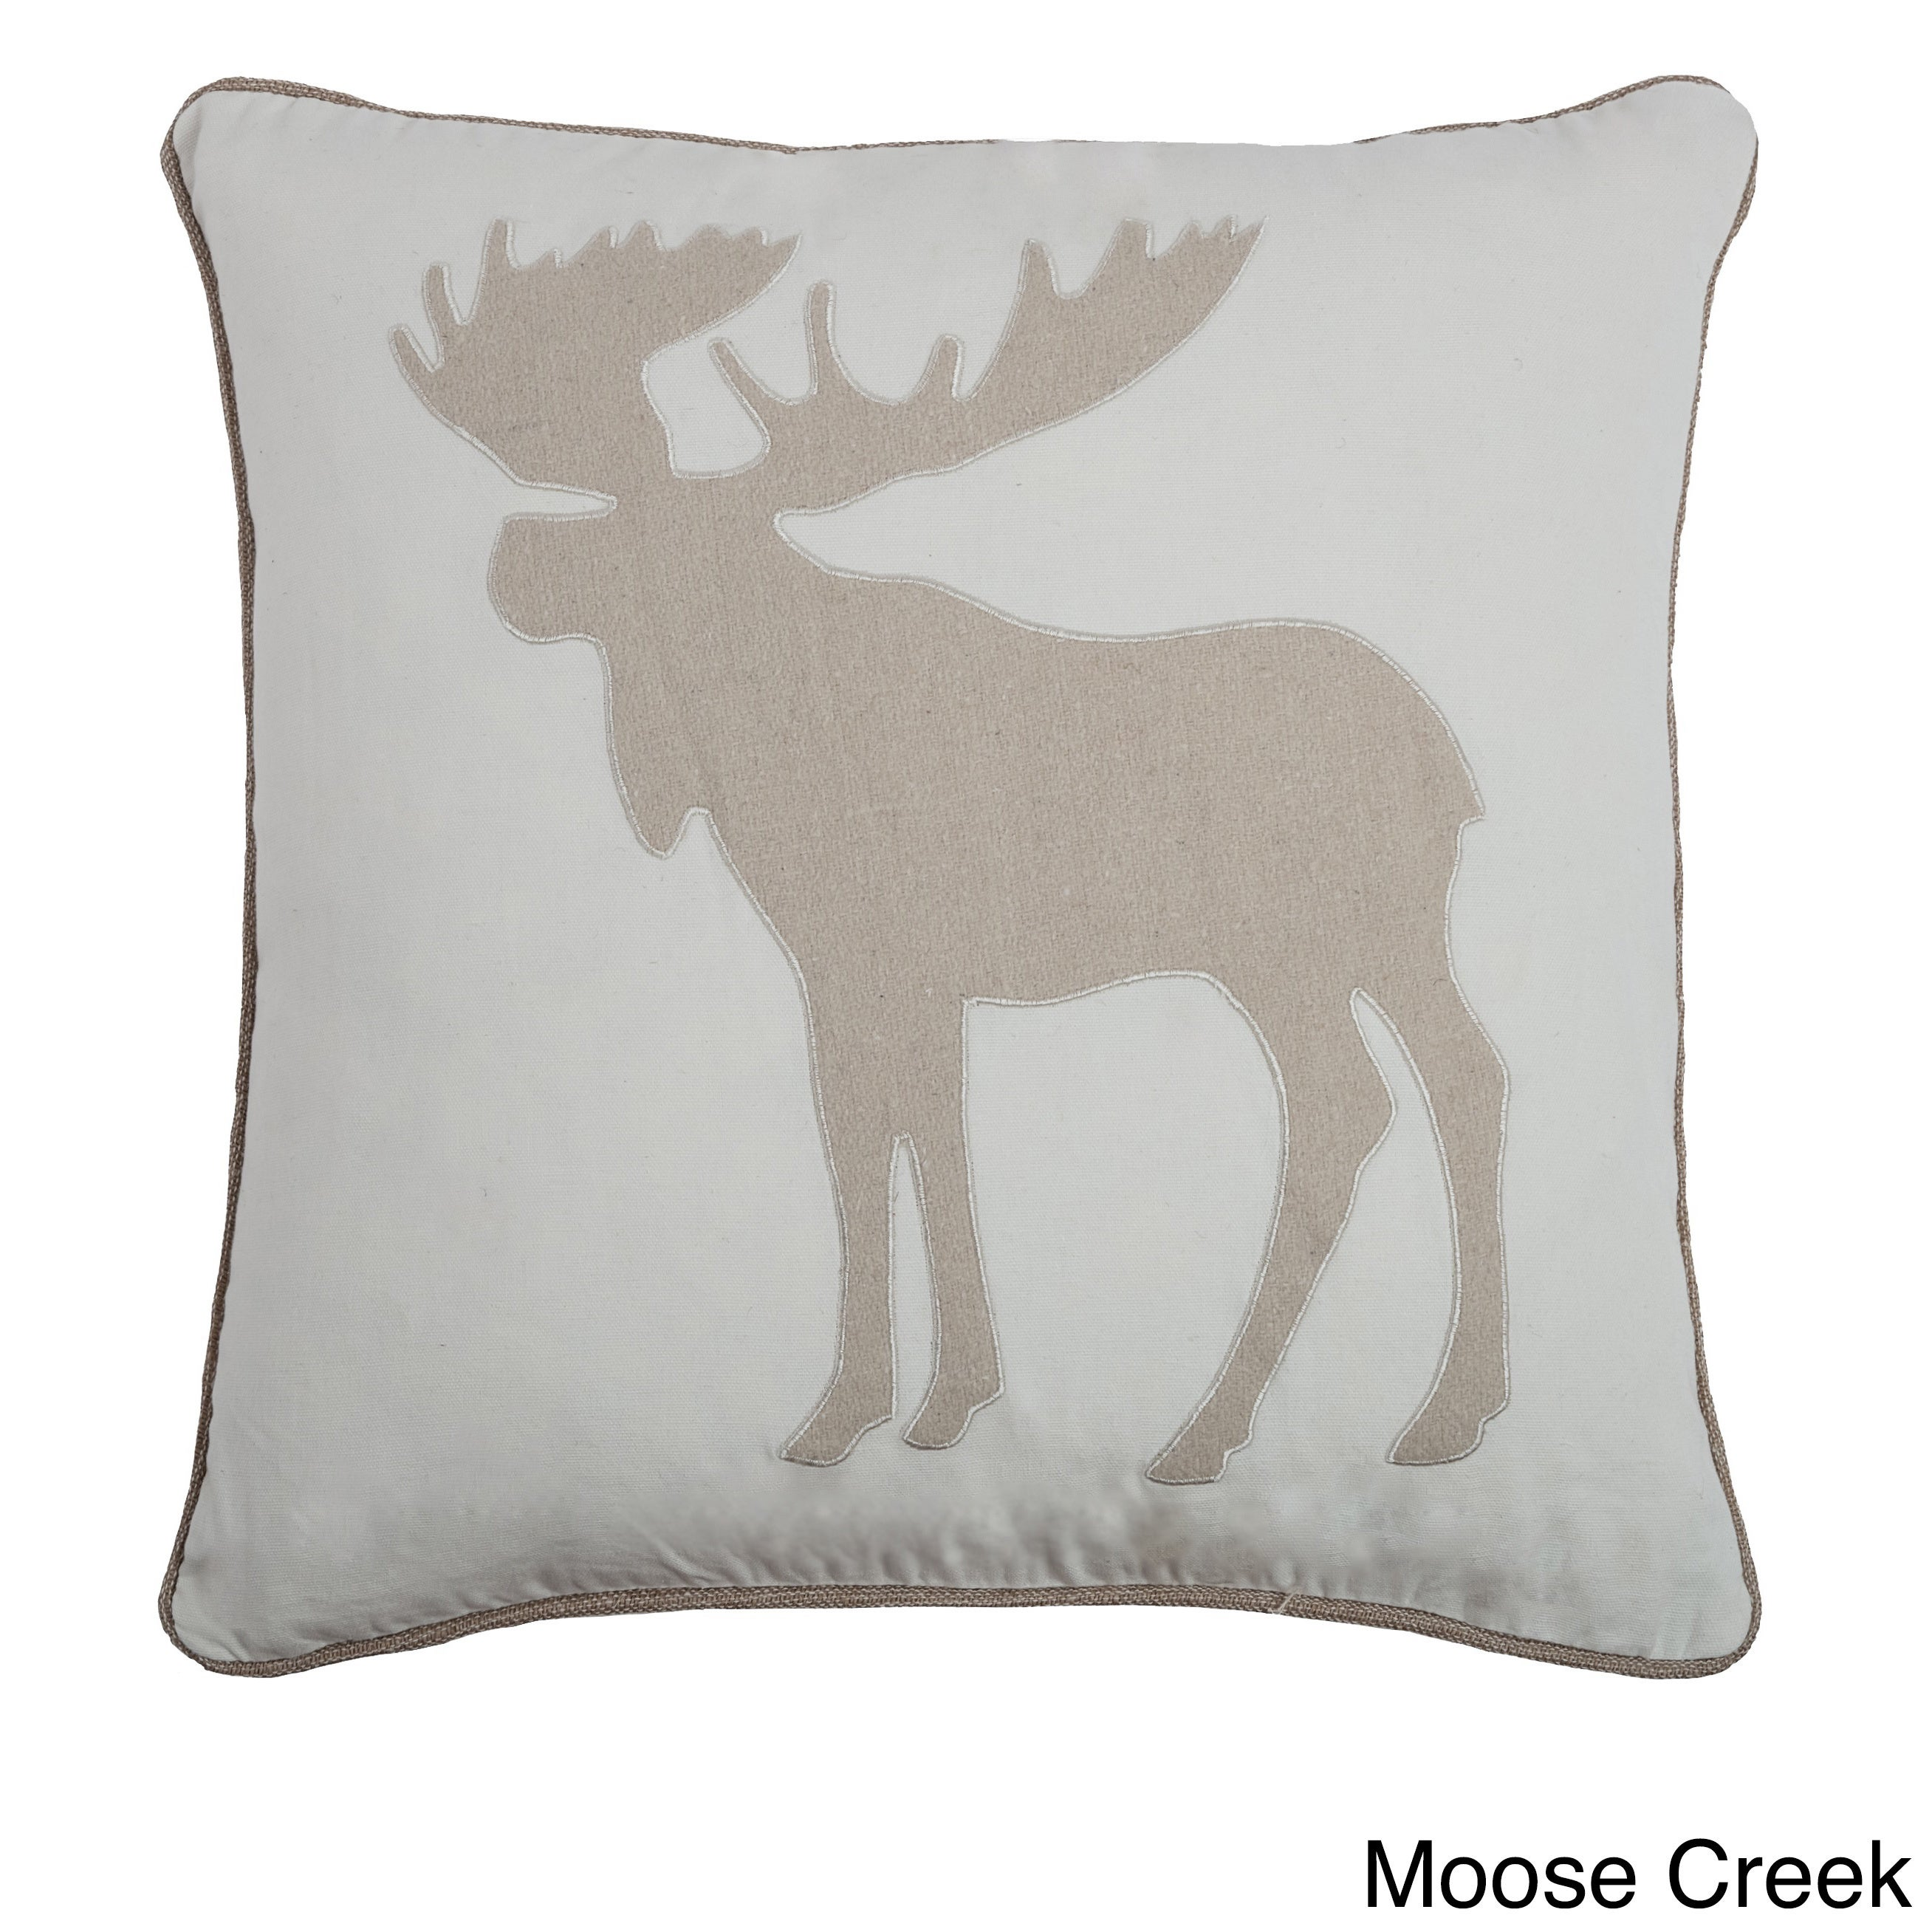 furnishings set comforter pillows products fairfield throw z madison whistler pillow creek deer coverlet